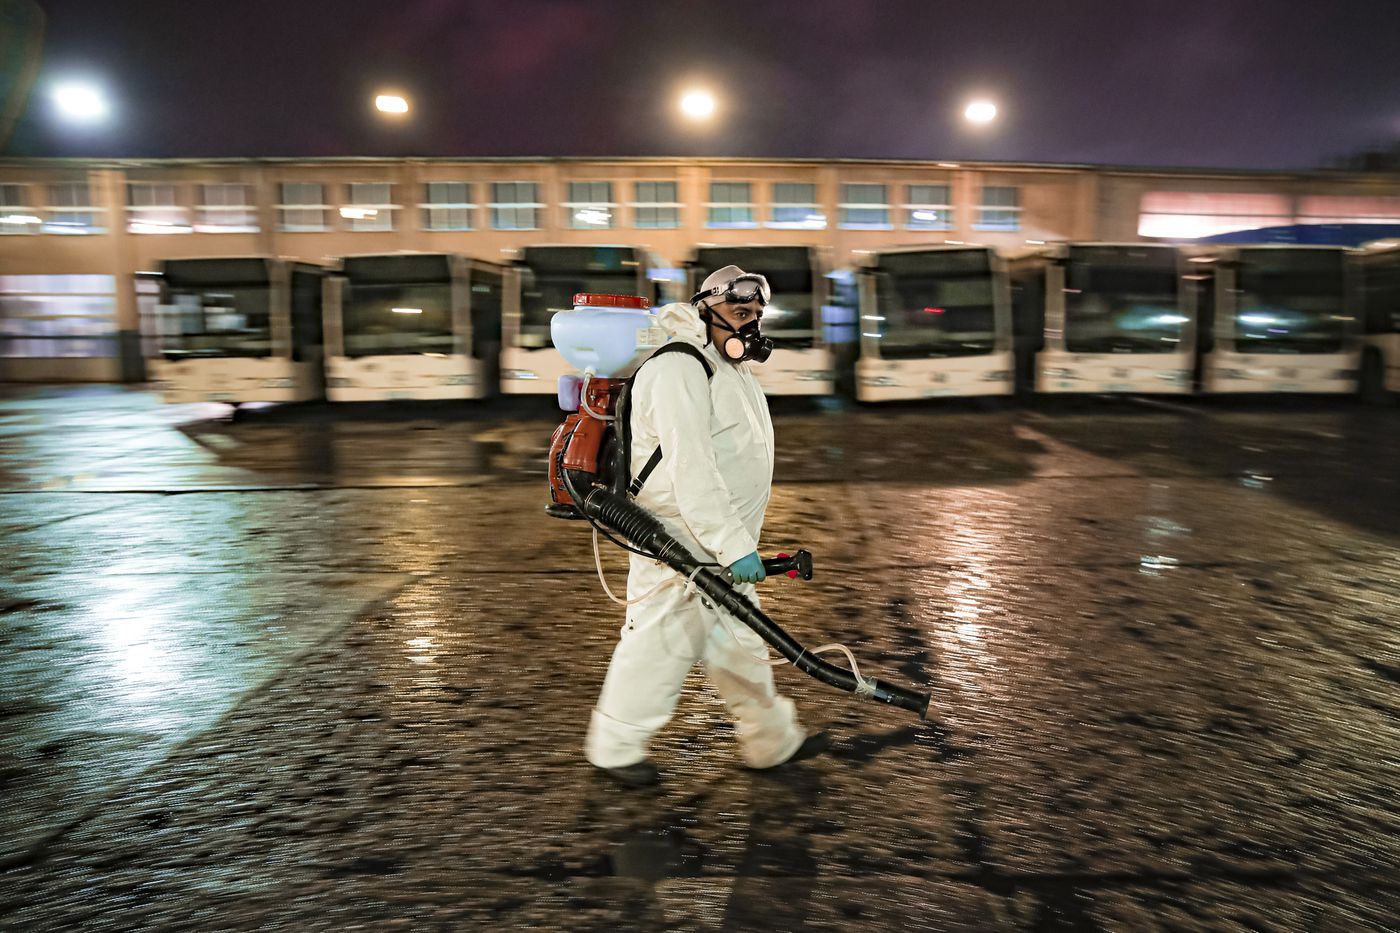 An employee of the pubic transport company wearing protective equipment walks during the daily disinfection of busses, part of the procedures to limit the spread of the coronavirus, in the early morning hours in Bucharest, Romania, Sunday, March 15, 2020. (AP Photo/Vadim Ghirda)